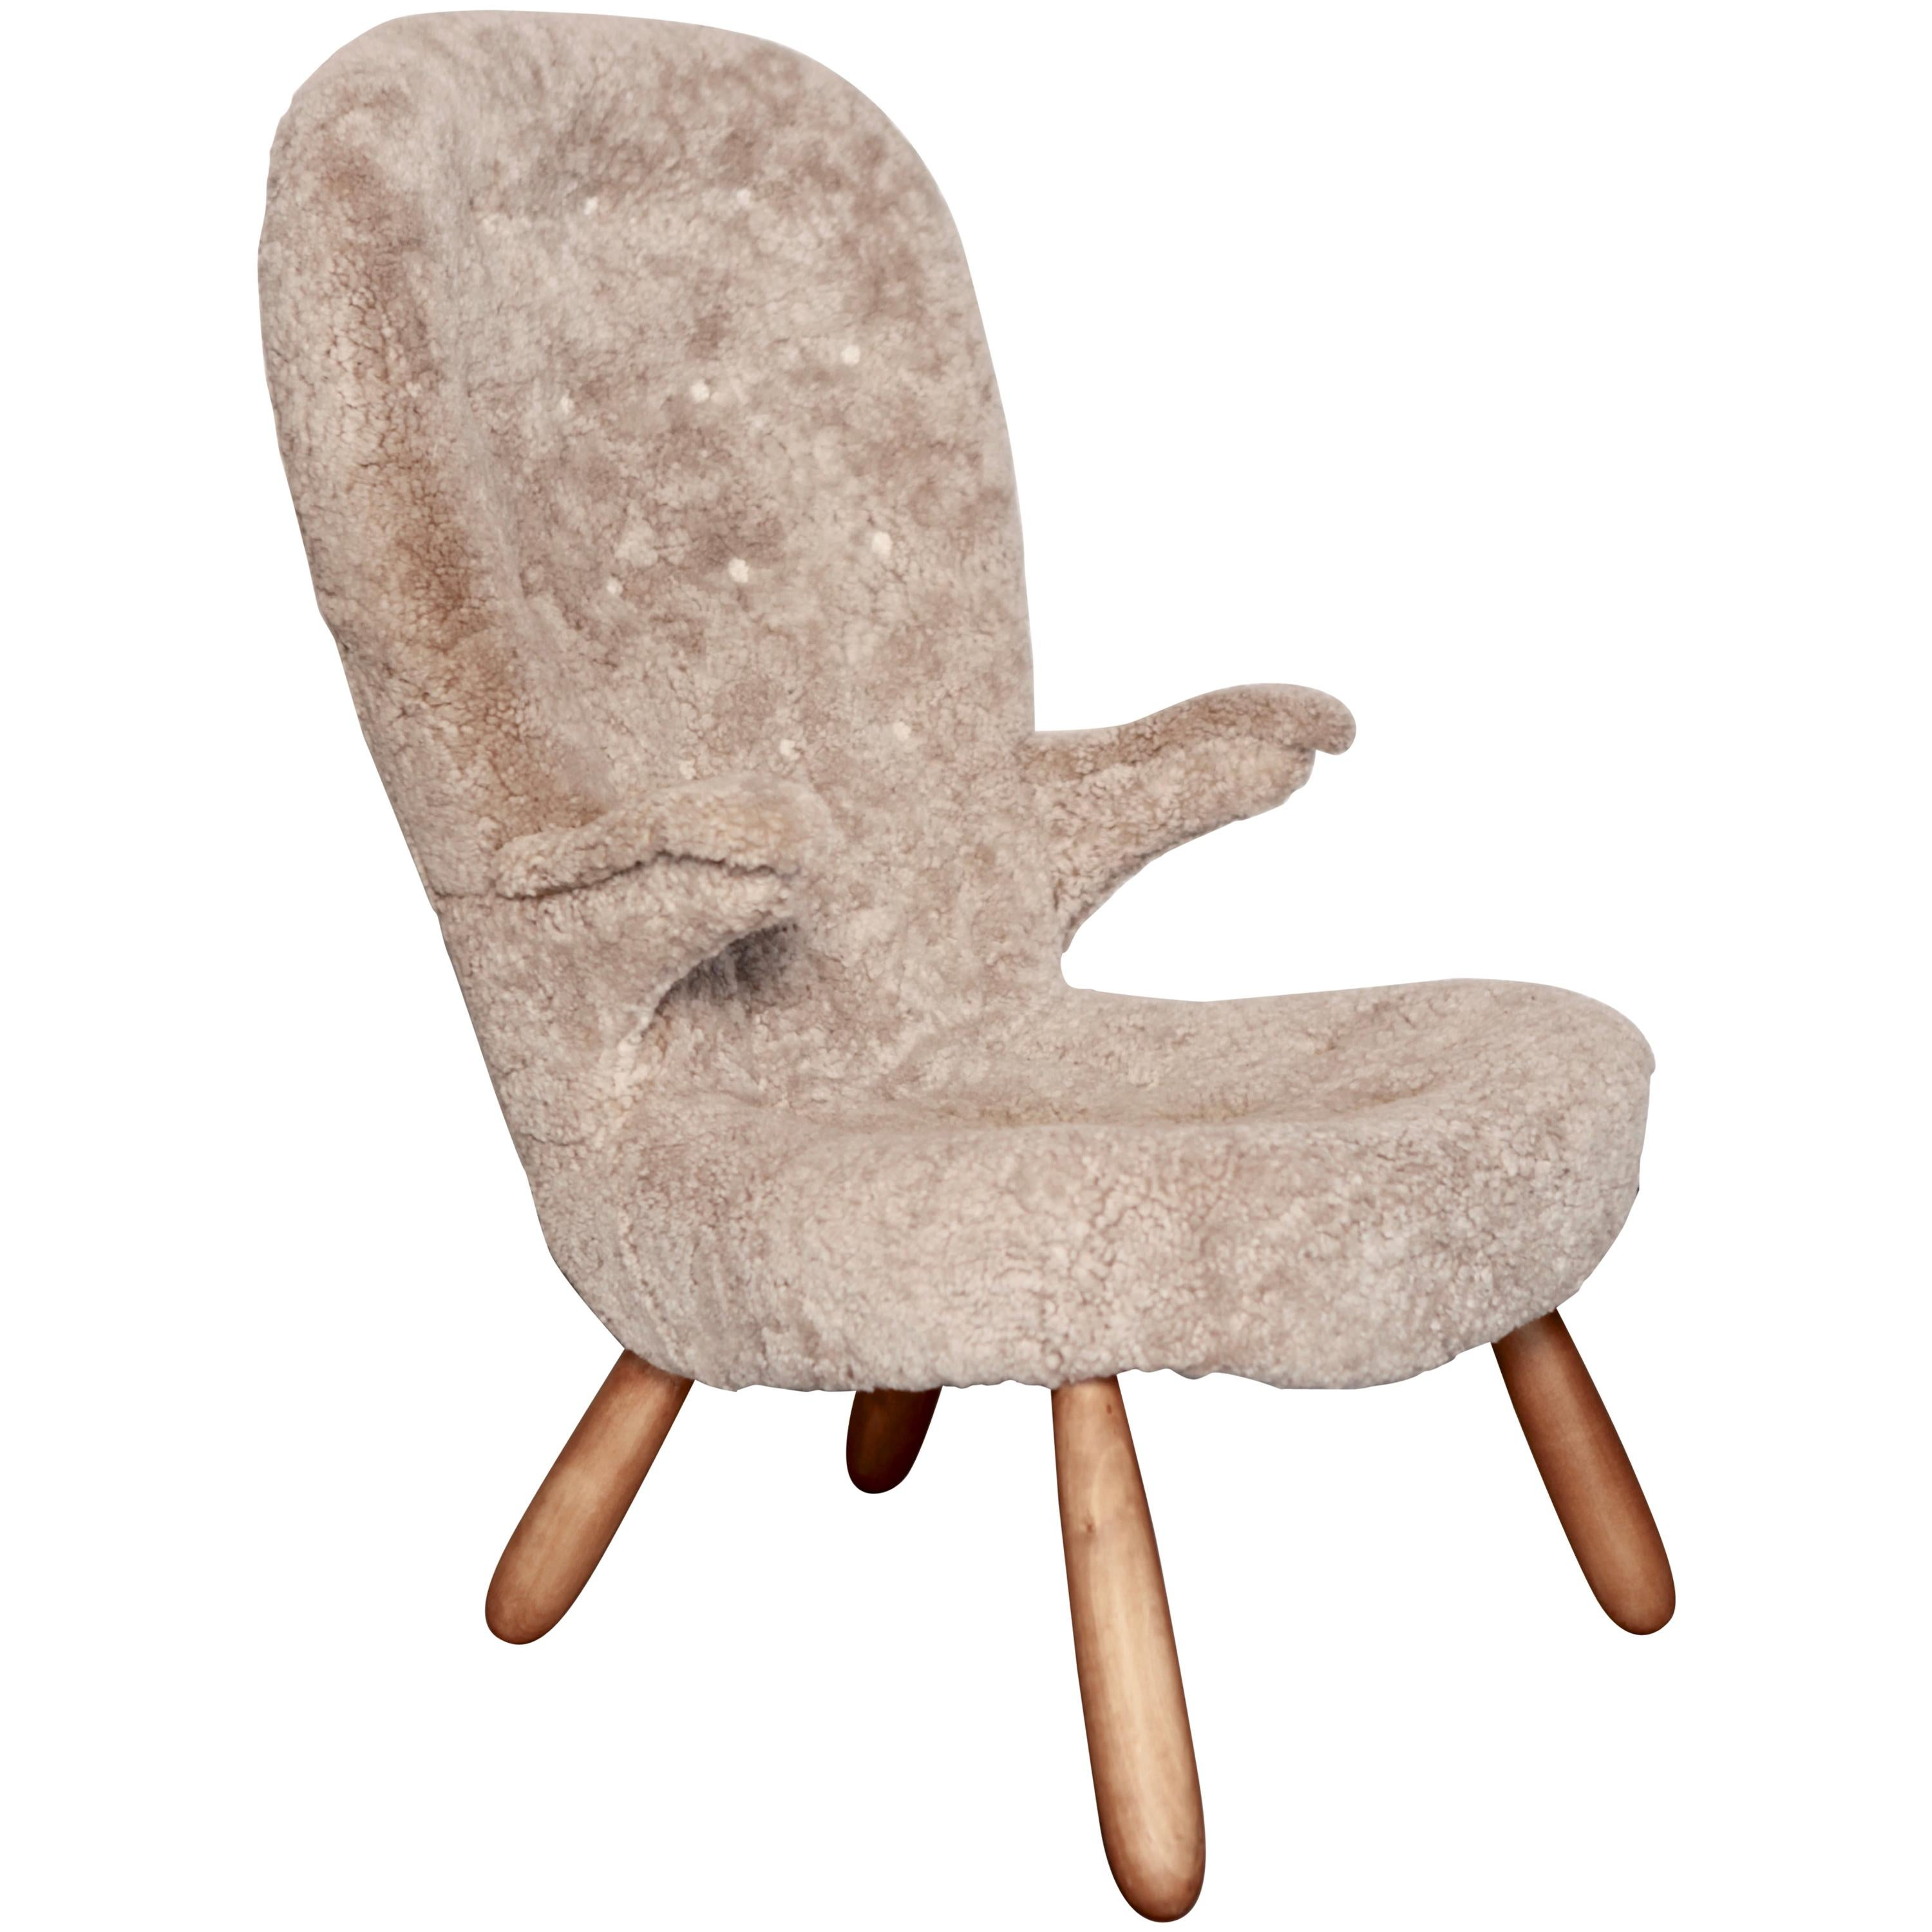 Philip Arctander, a Rare High Back 'Clam' Lounge Chair, Sweden, 1940s